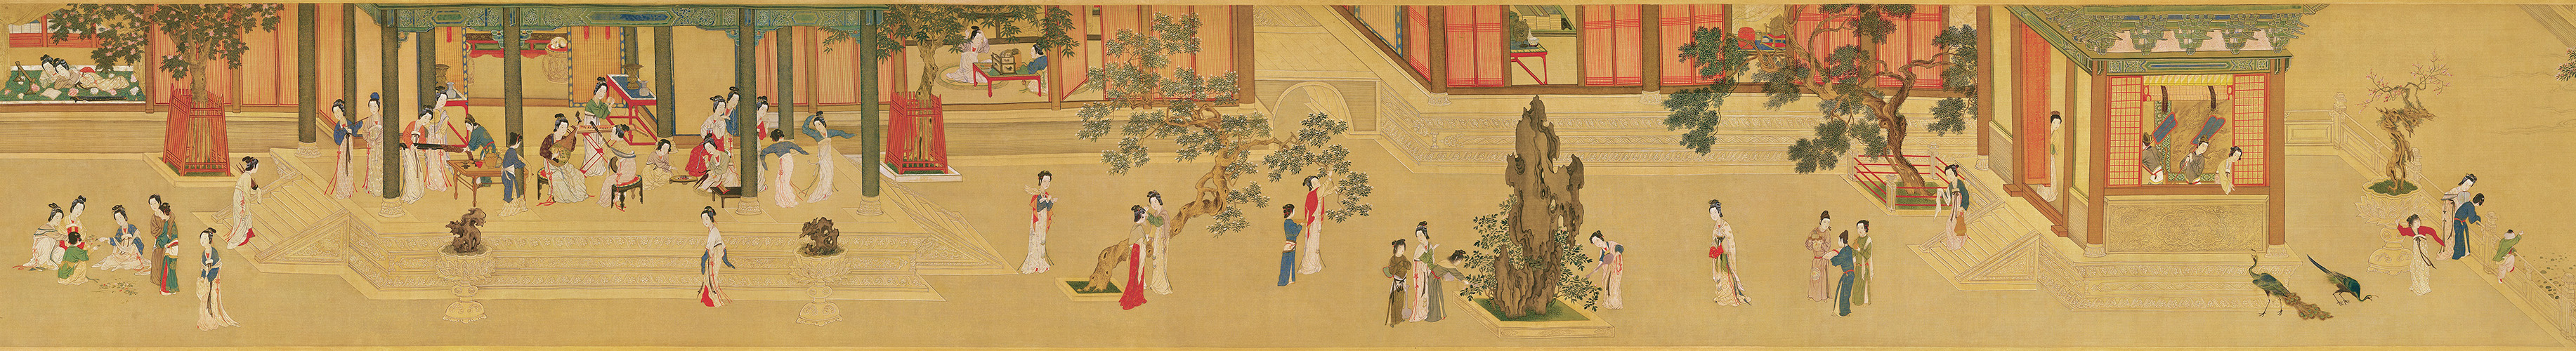 Qiu Ying Spring Morning In The Han Palace China Online